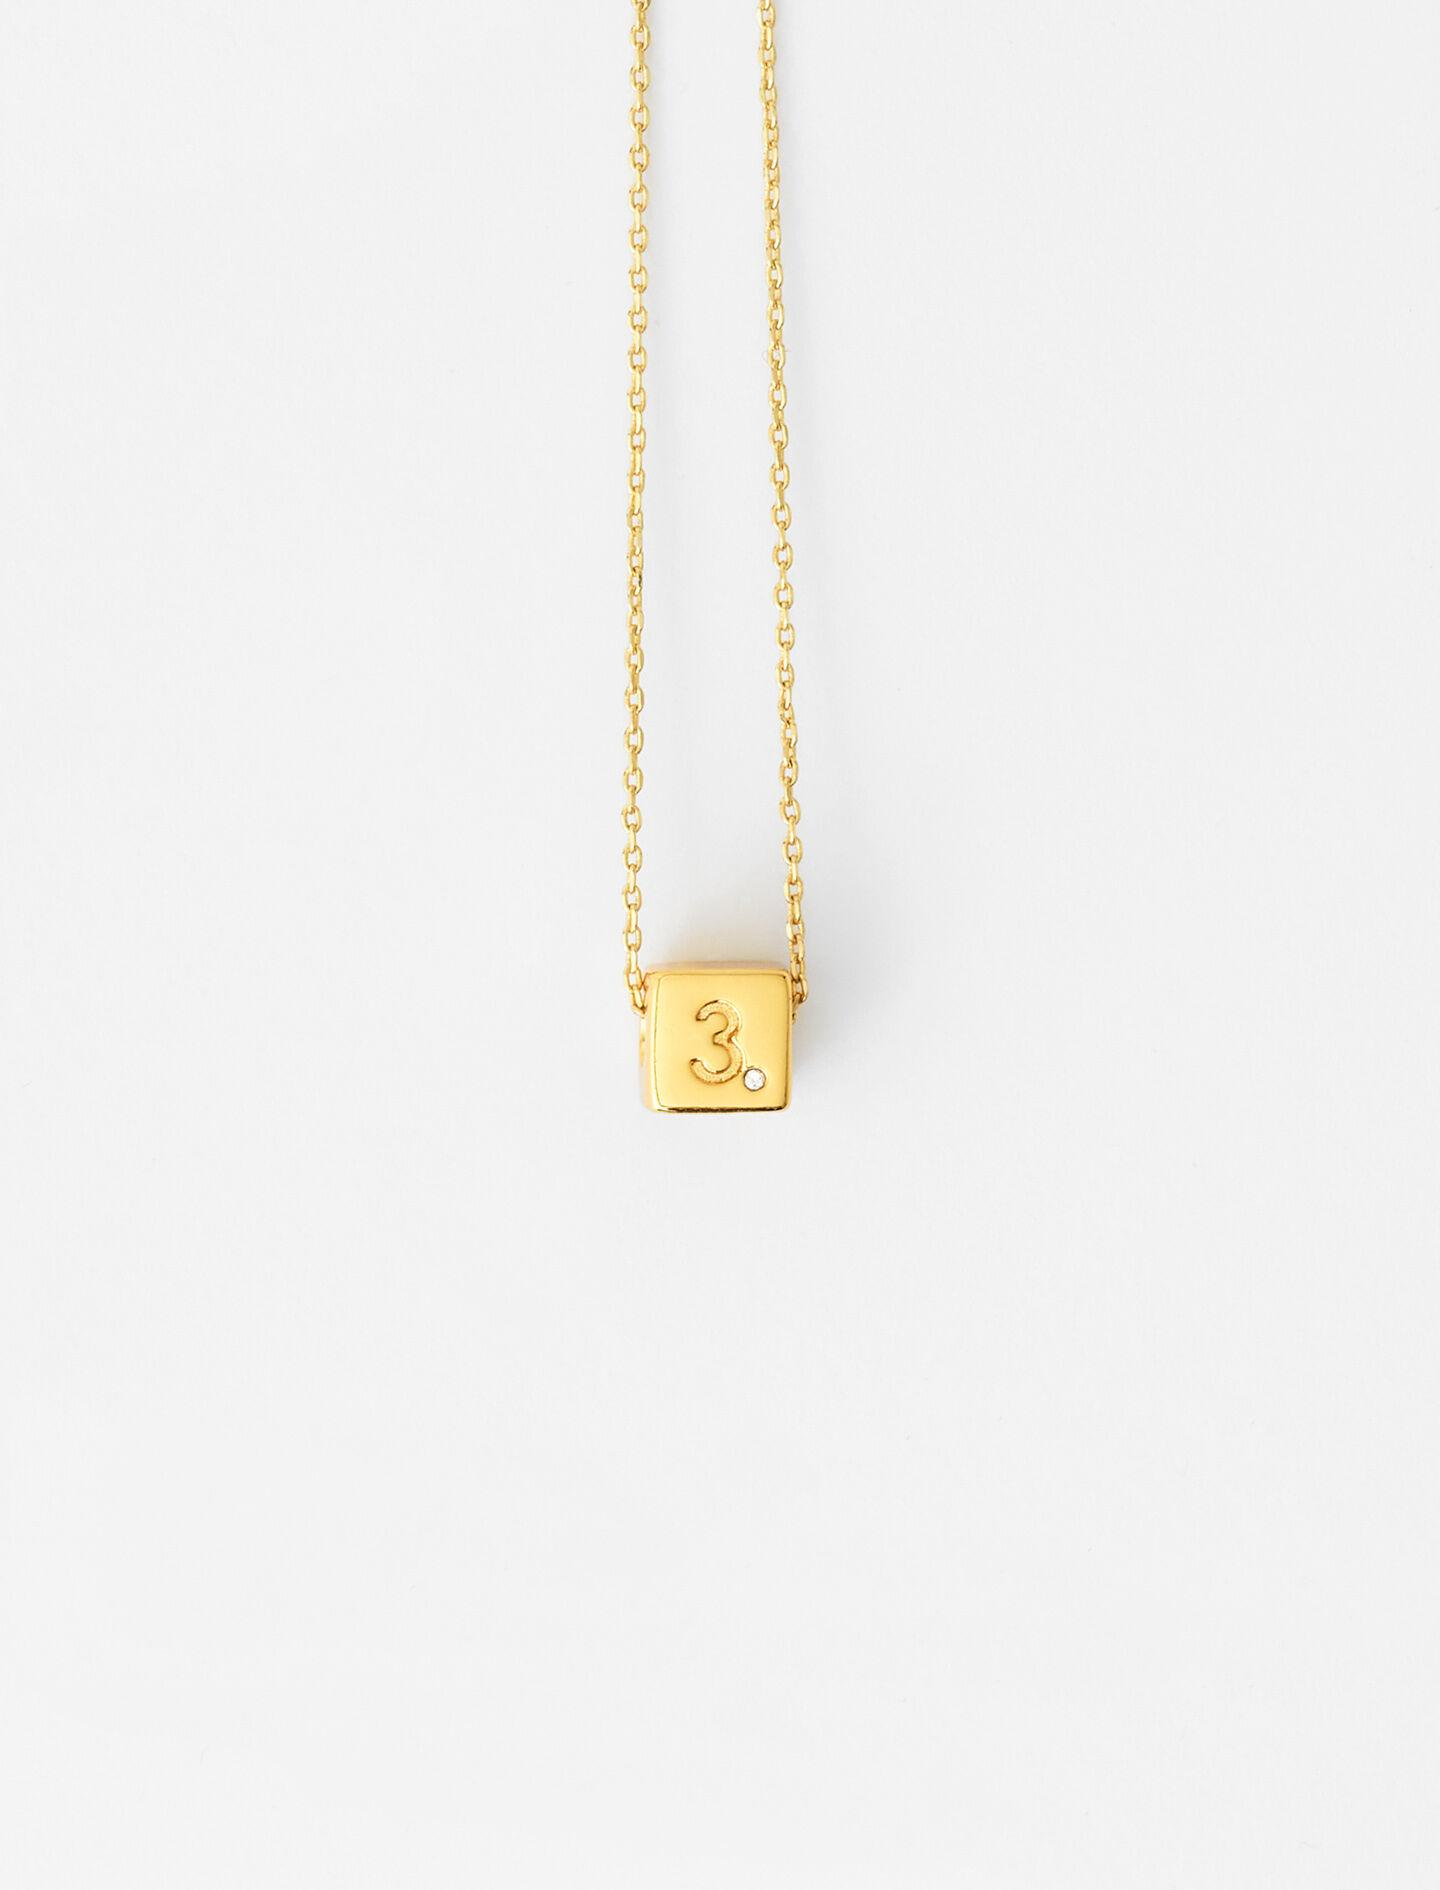 NUMBER 3 DICE NECKLACE